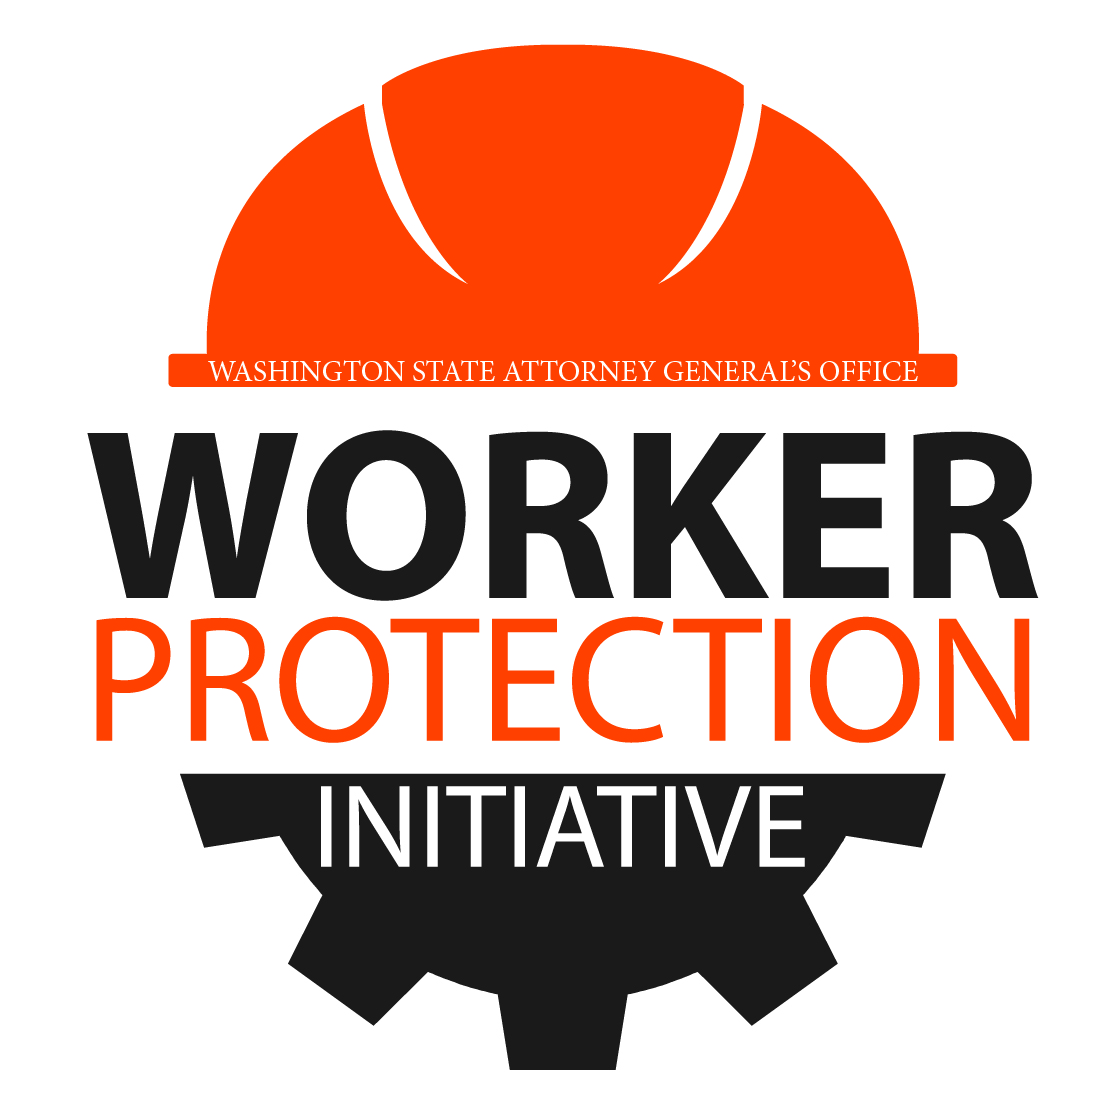 Attorney General's Worker Protection Initiative